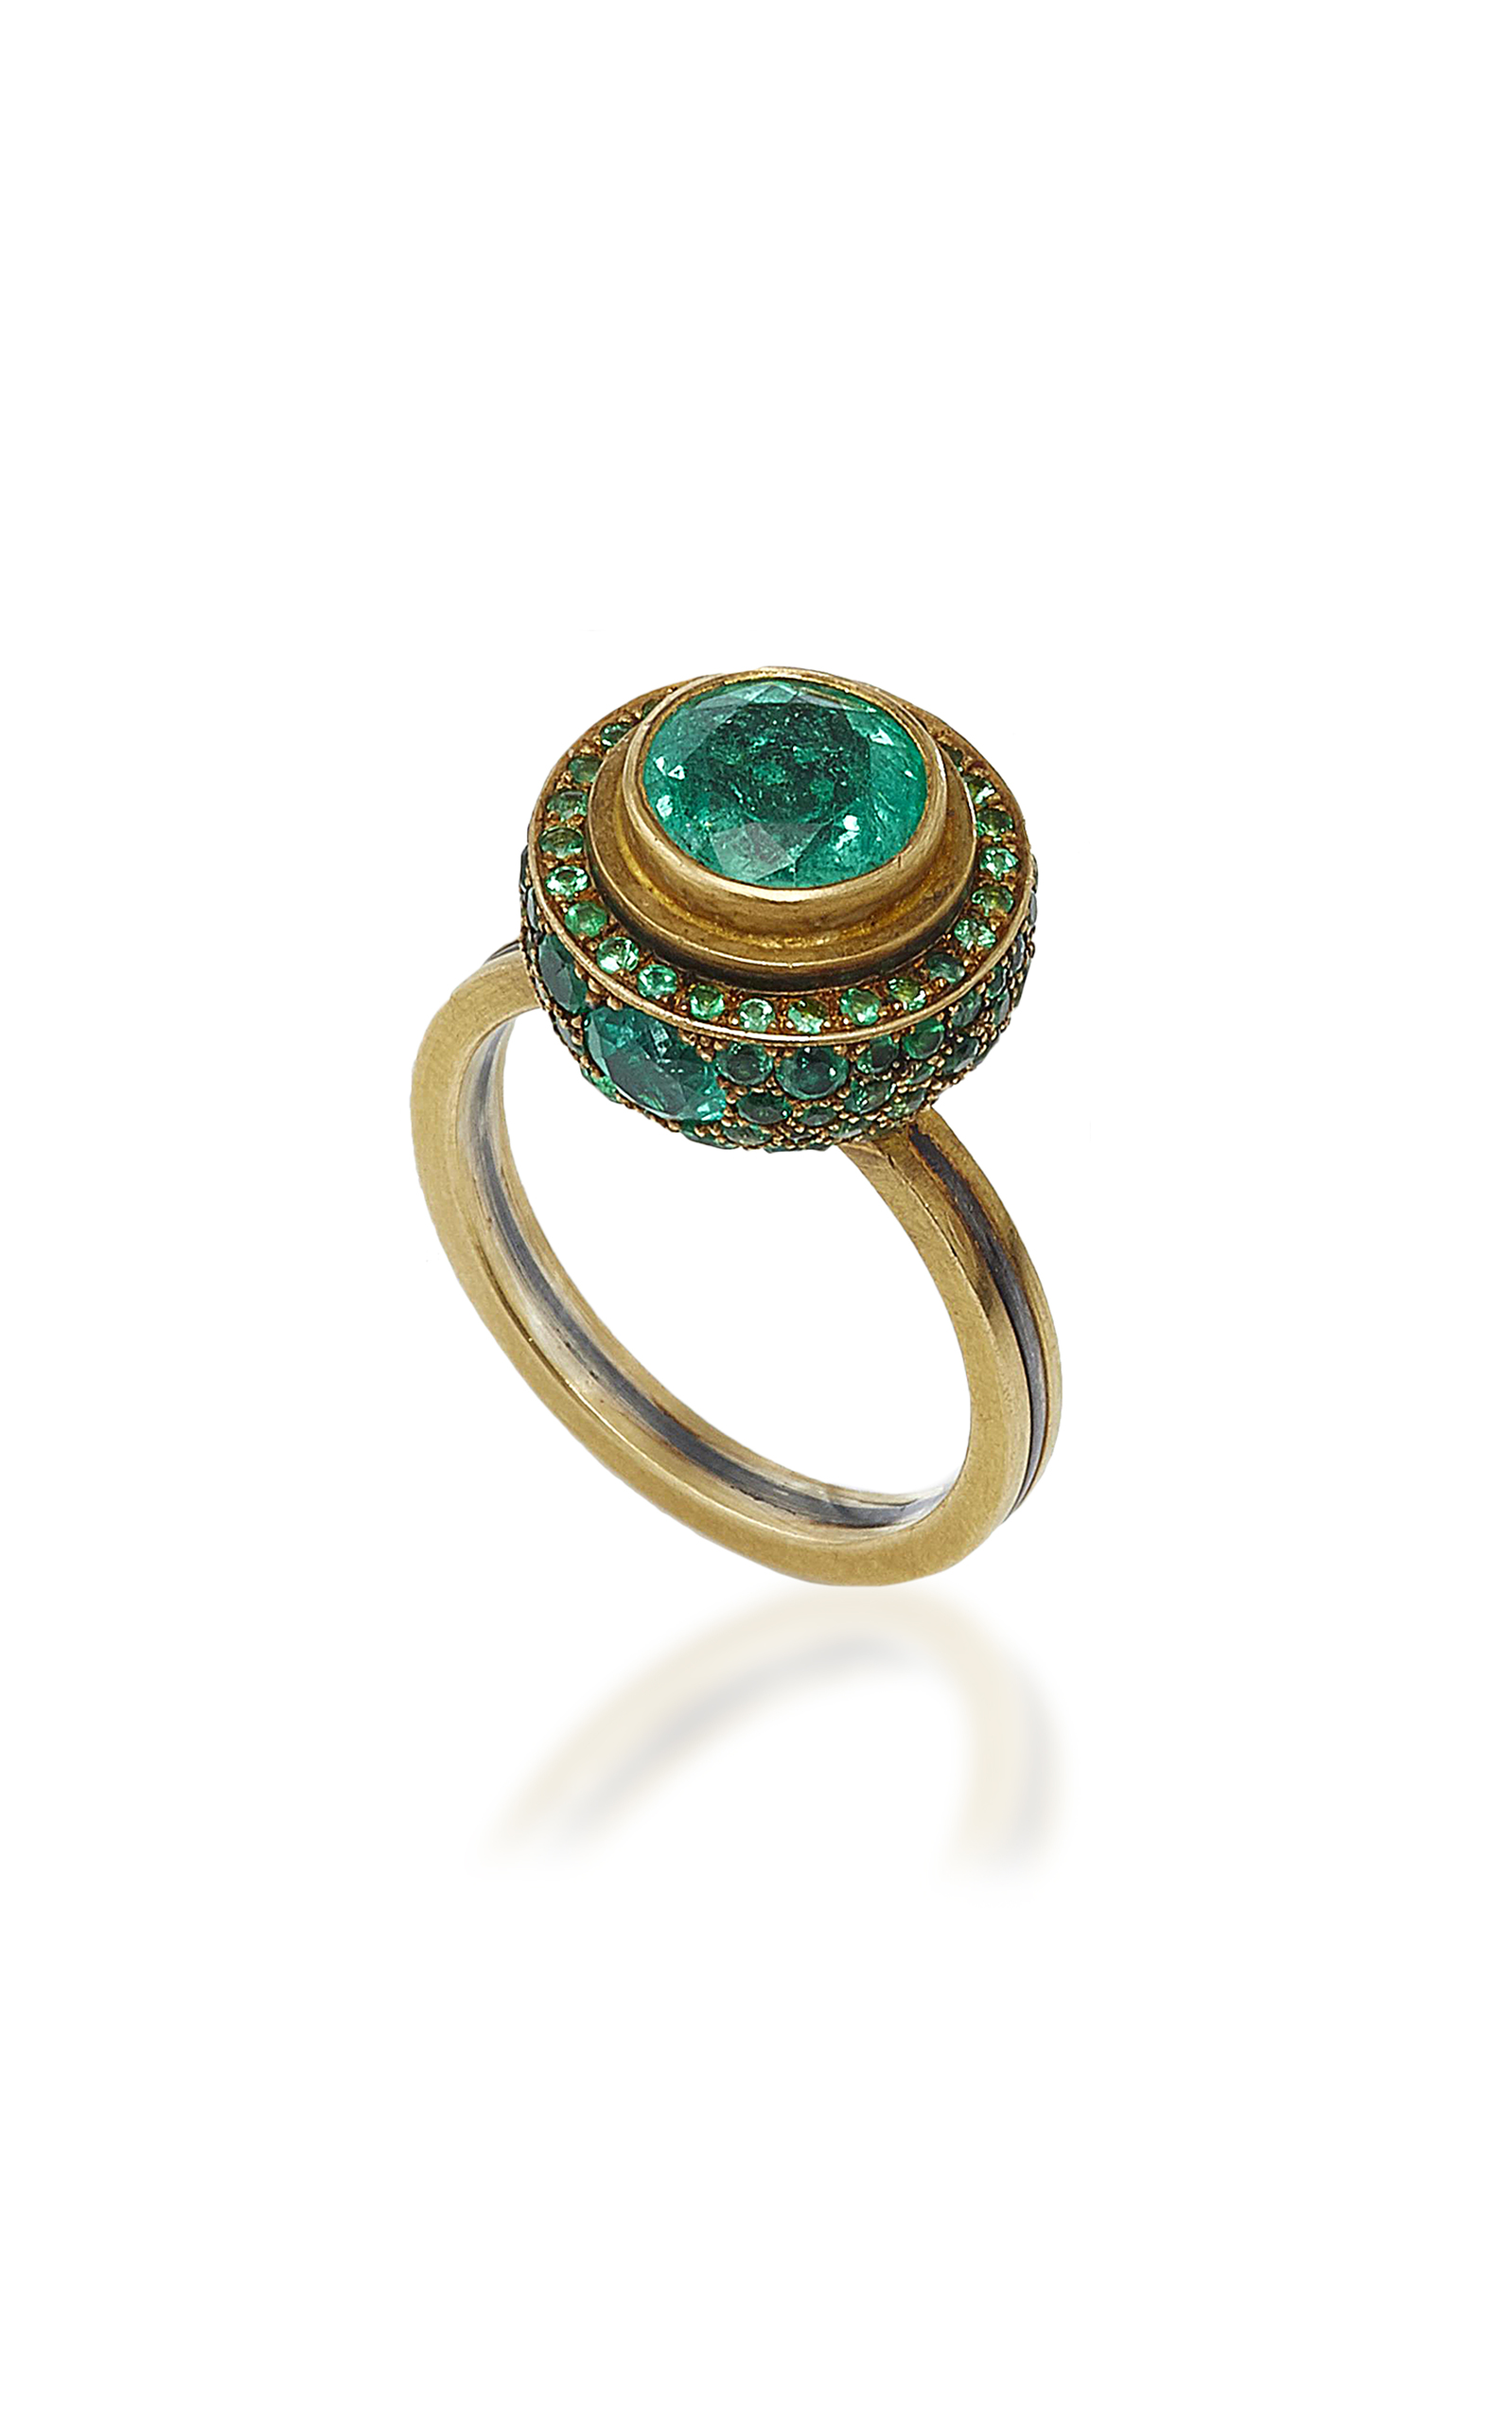 emerald scale upscale product editor shop subsampling jewellery the african crop ring devotion faberge faberg false